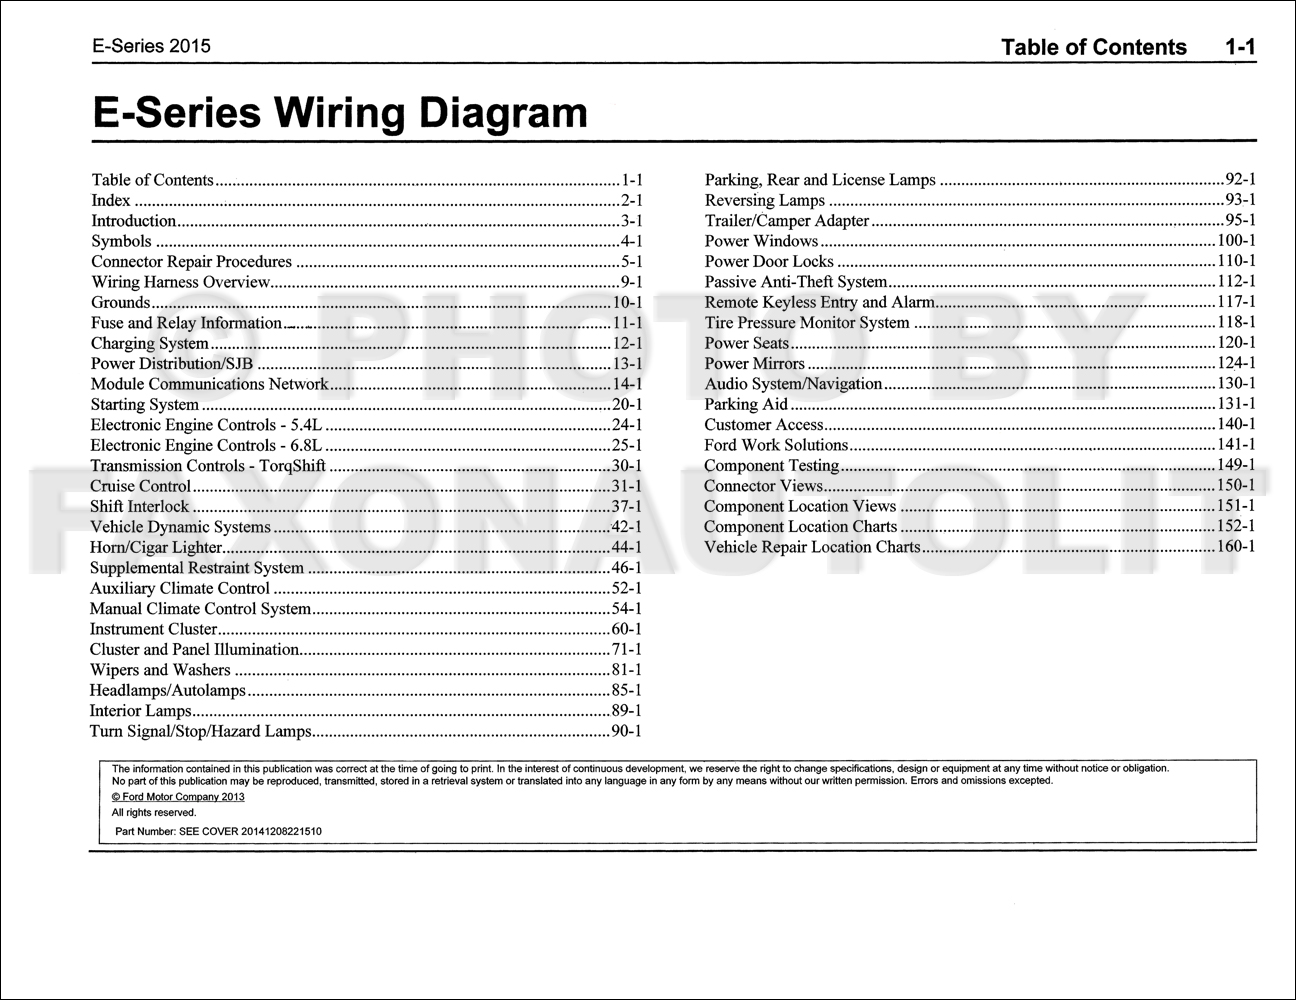 wiring diagrams for ford e series vehicles - 2008 e350 trailer,Wiring diagram,Wiring Diagrams For Ford E Series Vehicles